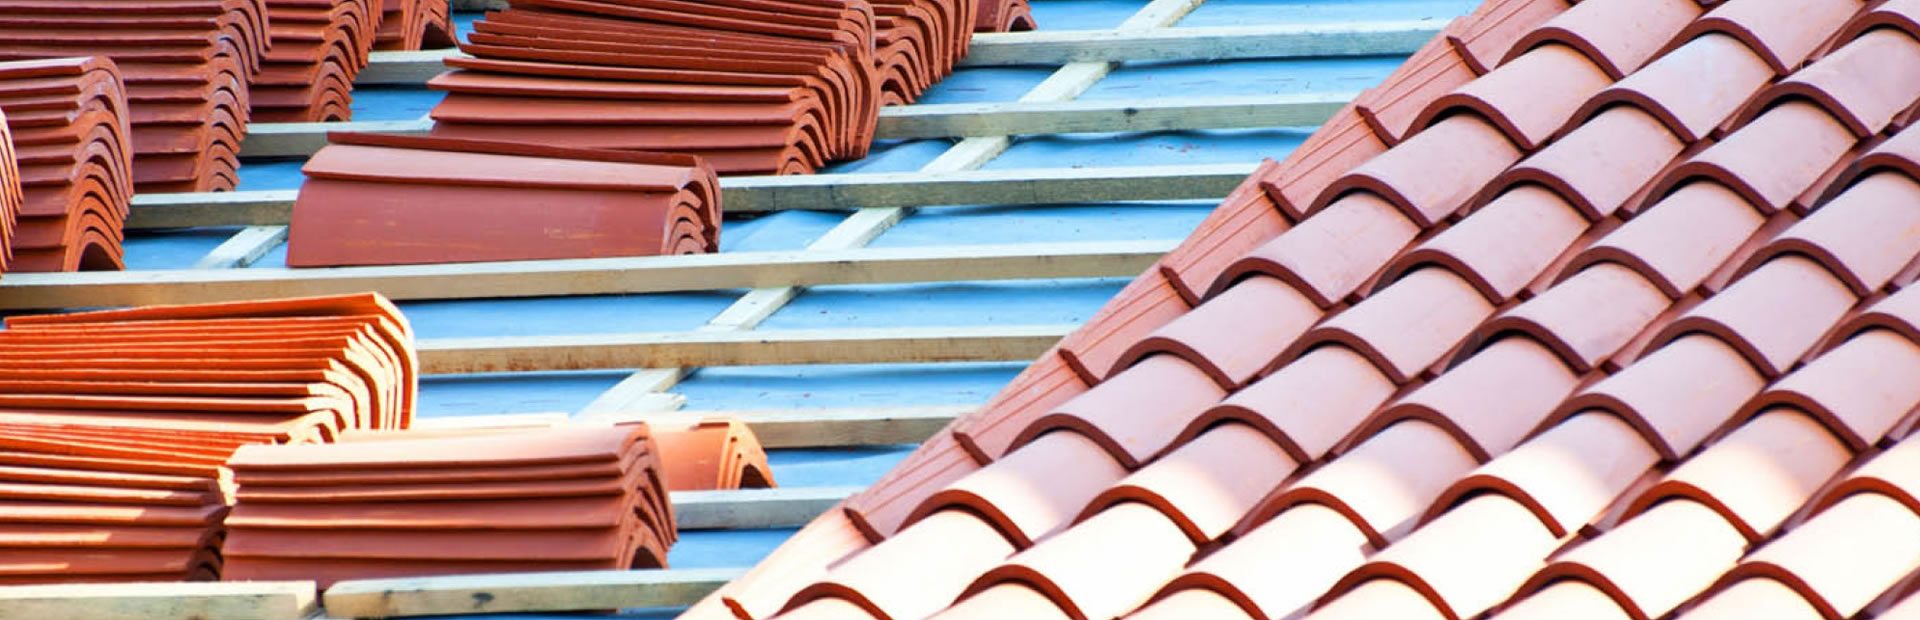 Alpine Swansea Roofing Services Your Local Swansea Roofer For Over 30 Years